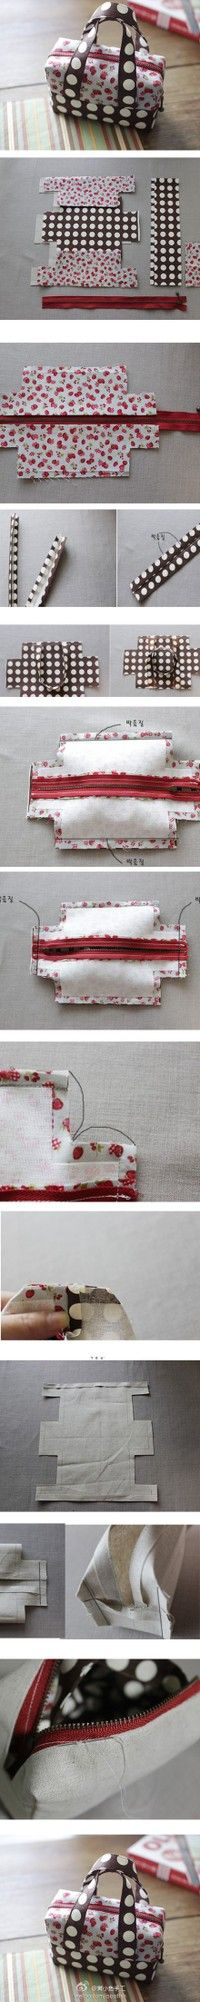 neat zippered bag